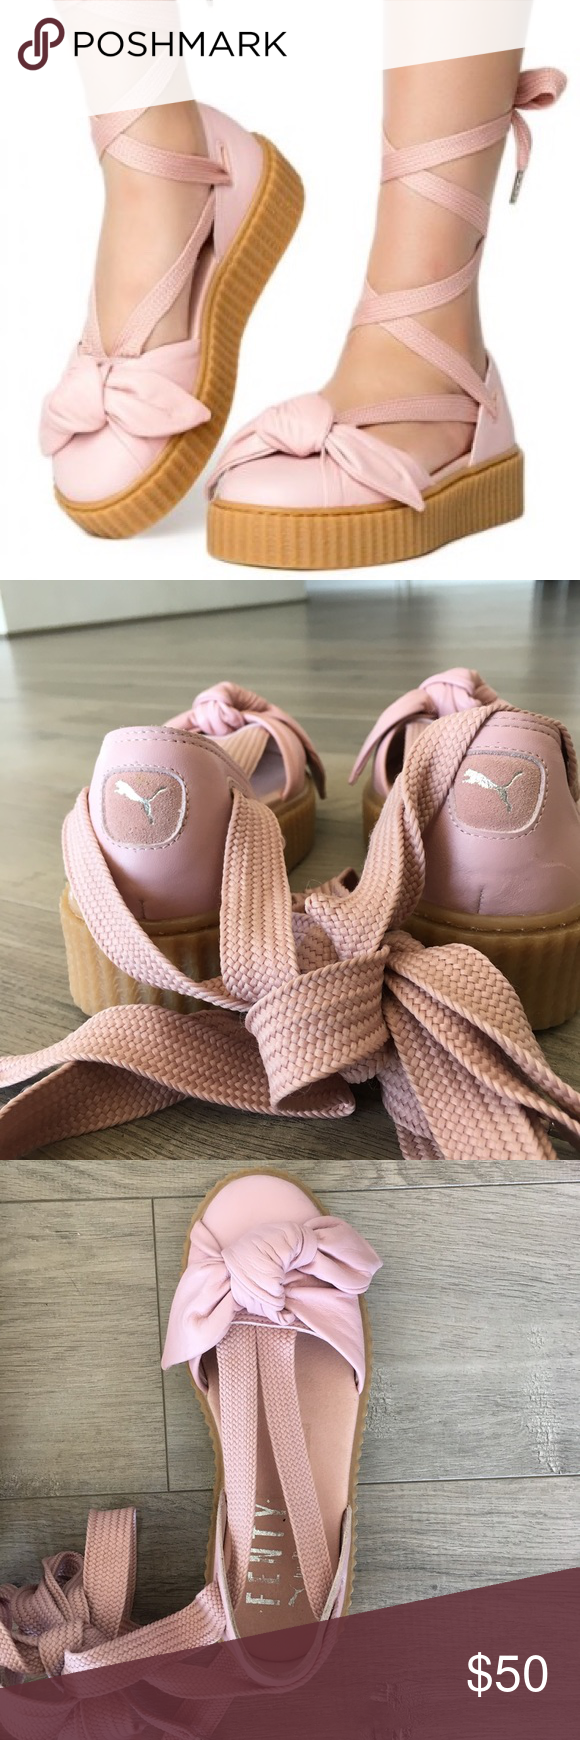 e51a8792cce2 Fenty Puma by Rihanna Bow Creeper Sandals faux leather new without tags Puma  Fenty Bandana Creeper Flats Ballerina Flats Sneakers Puma Shoes